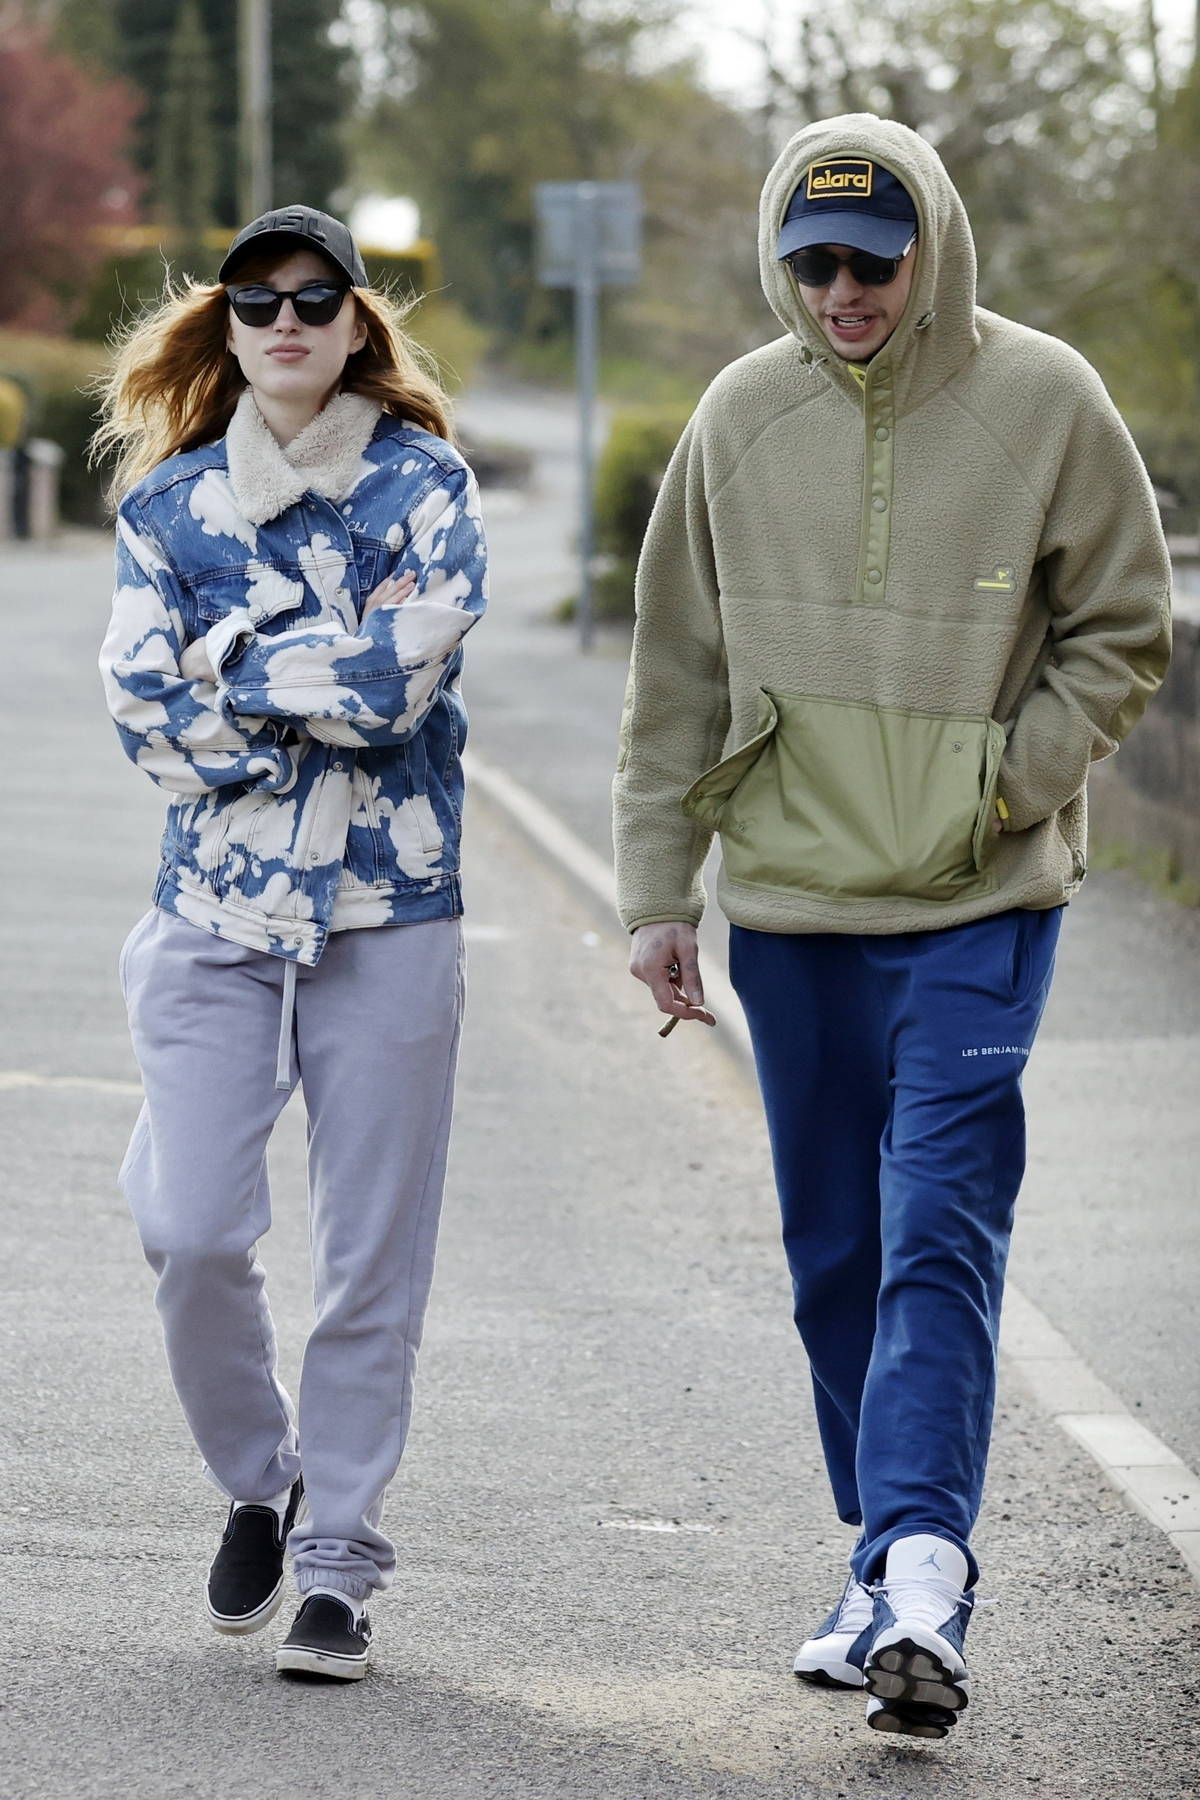 Phoebe Dynevor and Pete Davidson step out for the first time as a couple while enjoying a countryside stroll in Stoke-on-Trent, UK